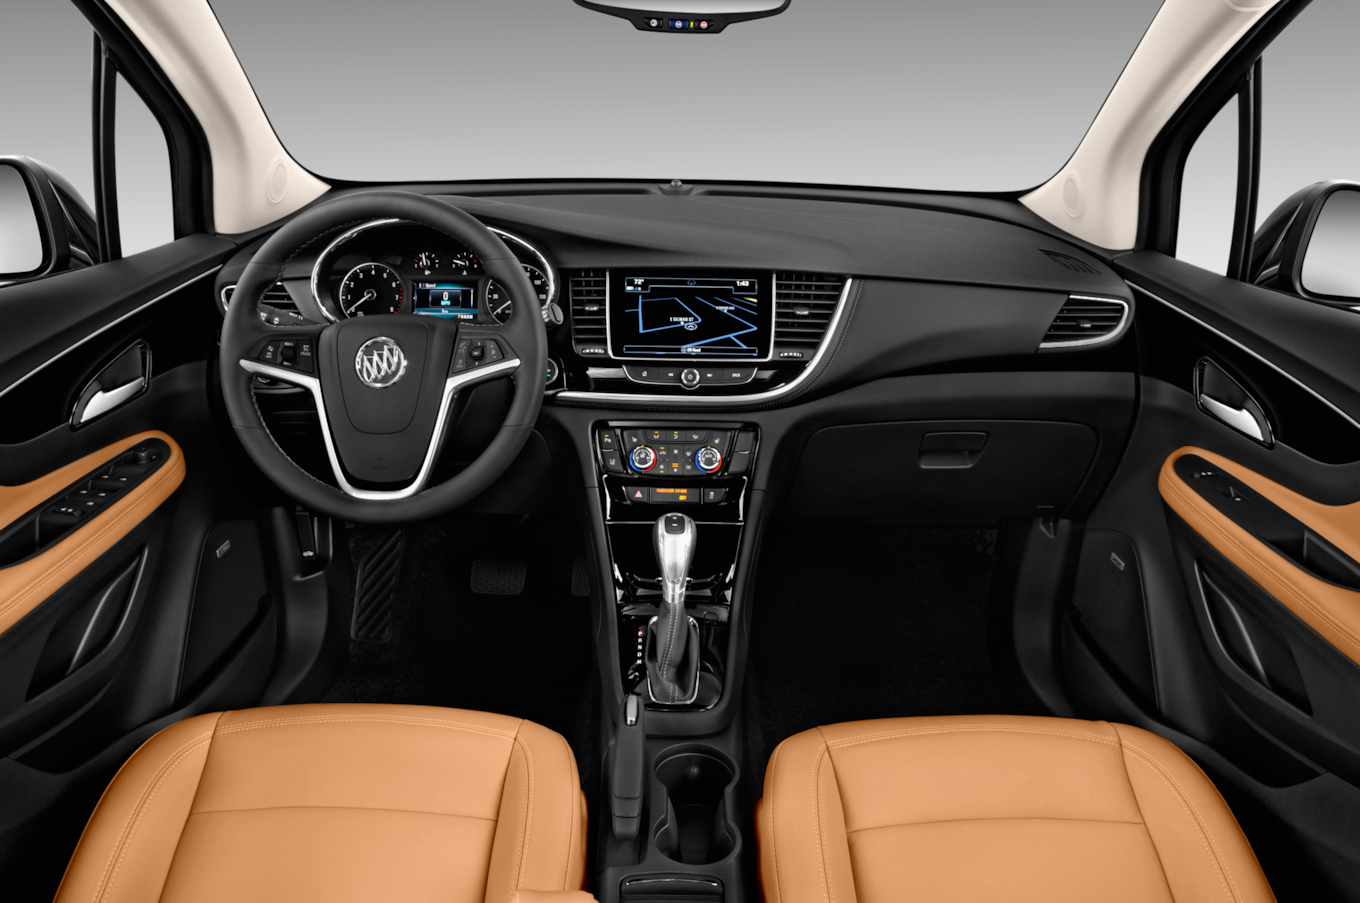 24 Concept of 2019 Buick Encore Release Date Engine Research New with 2019 Buick Encore Release Date Engine